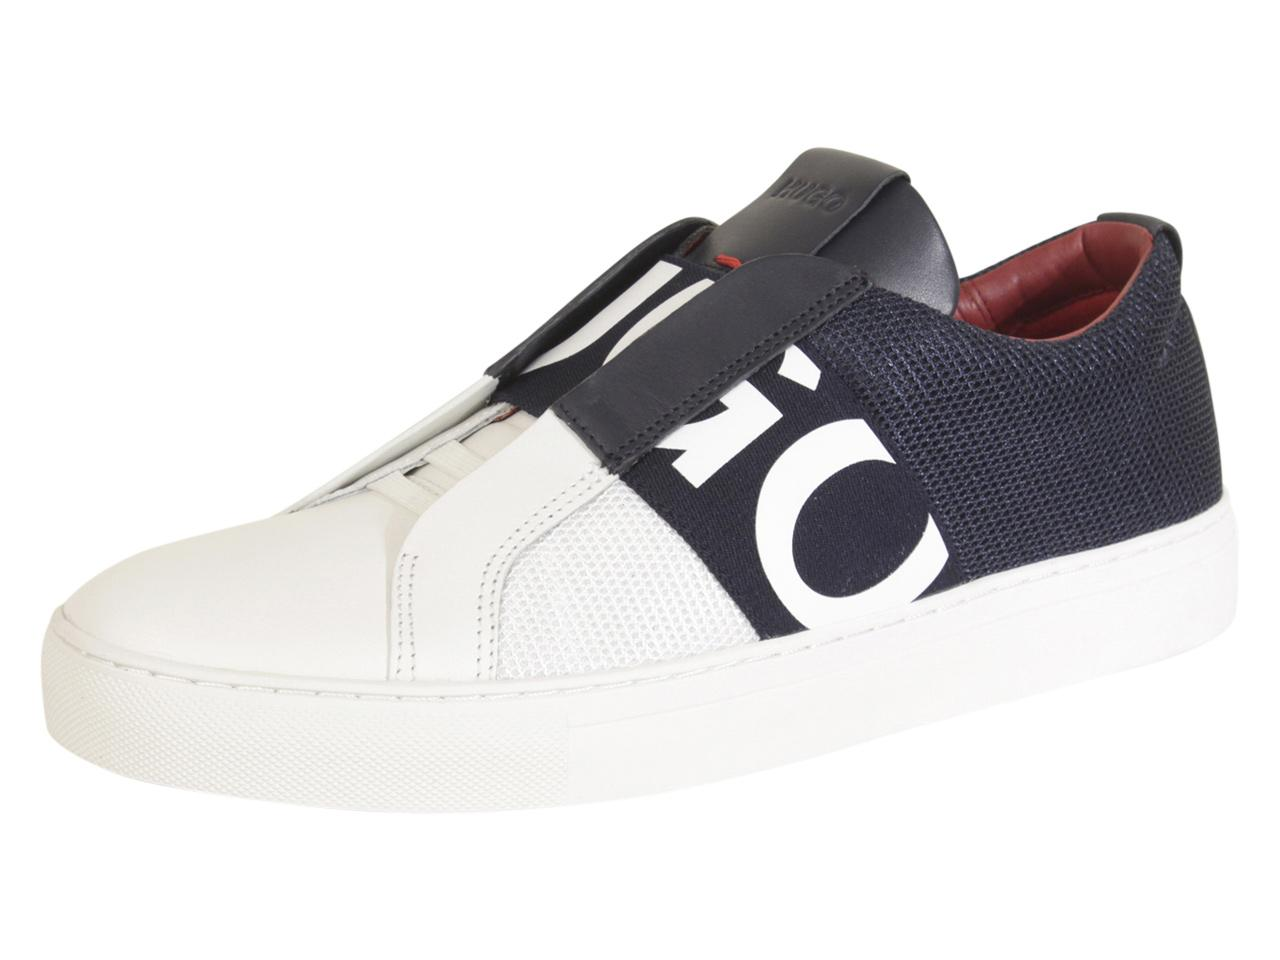 Futurism Slip-On Sneakers Shoes